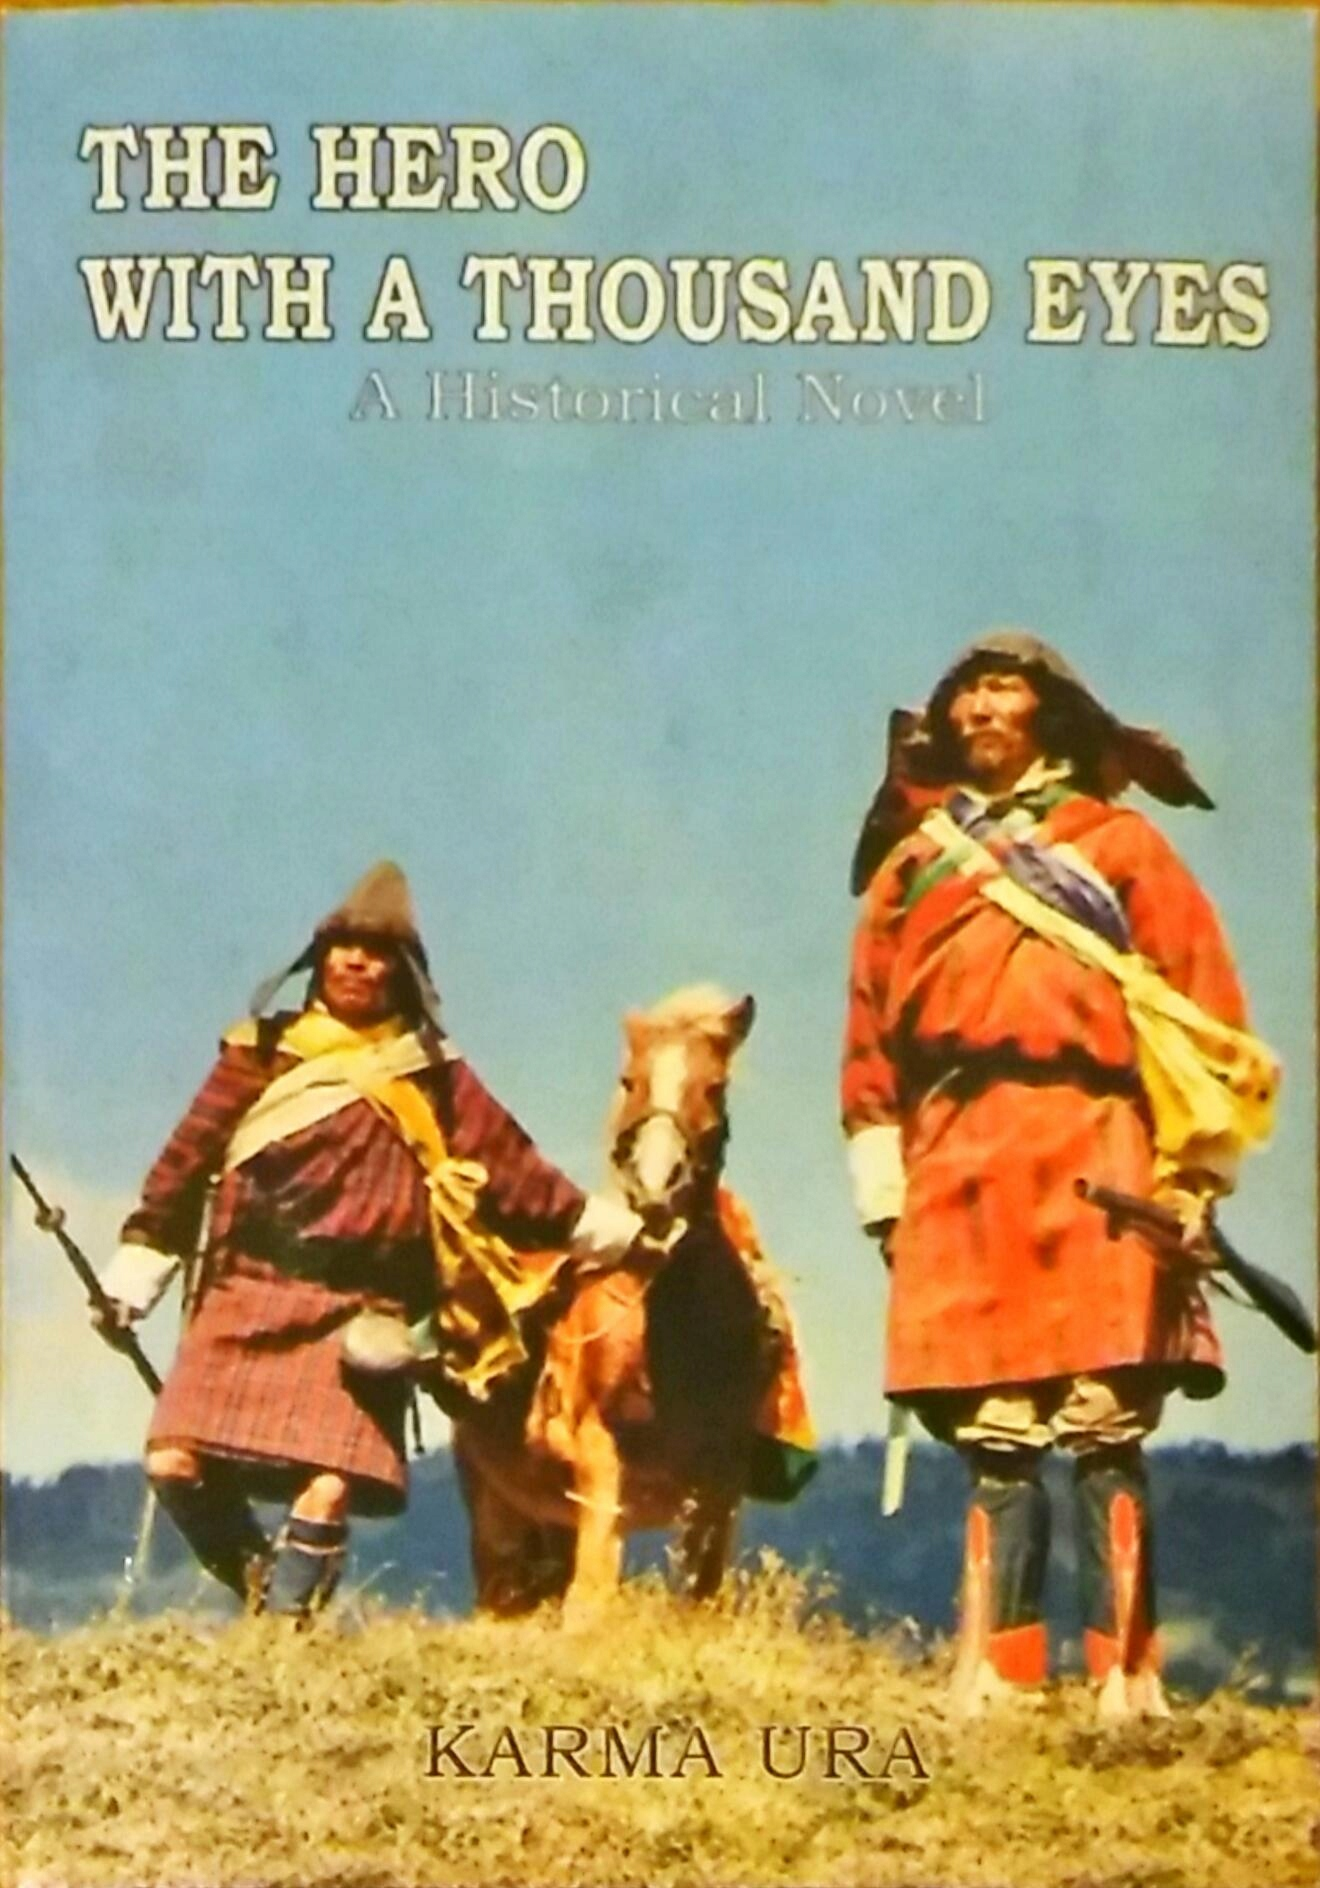 The Hero with a Thousand Eyes. A Historical Novel